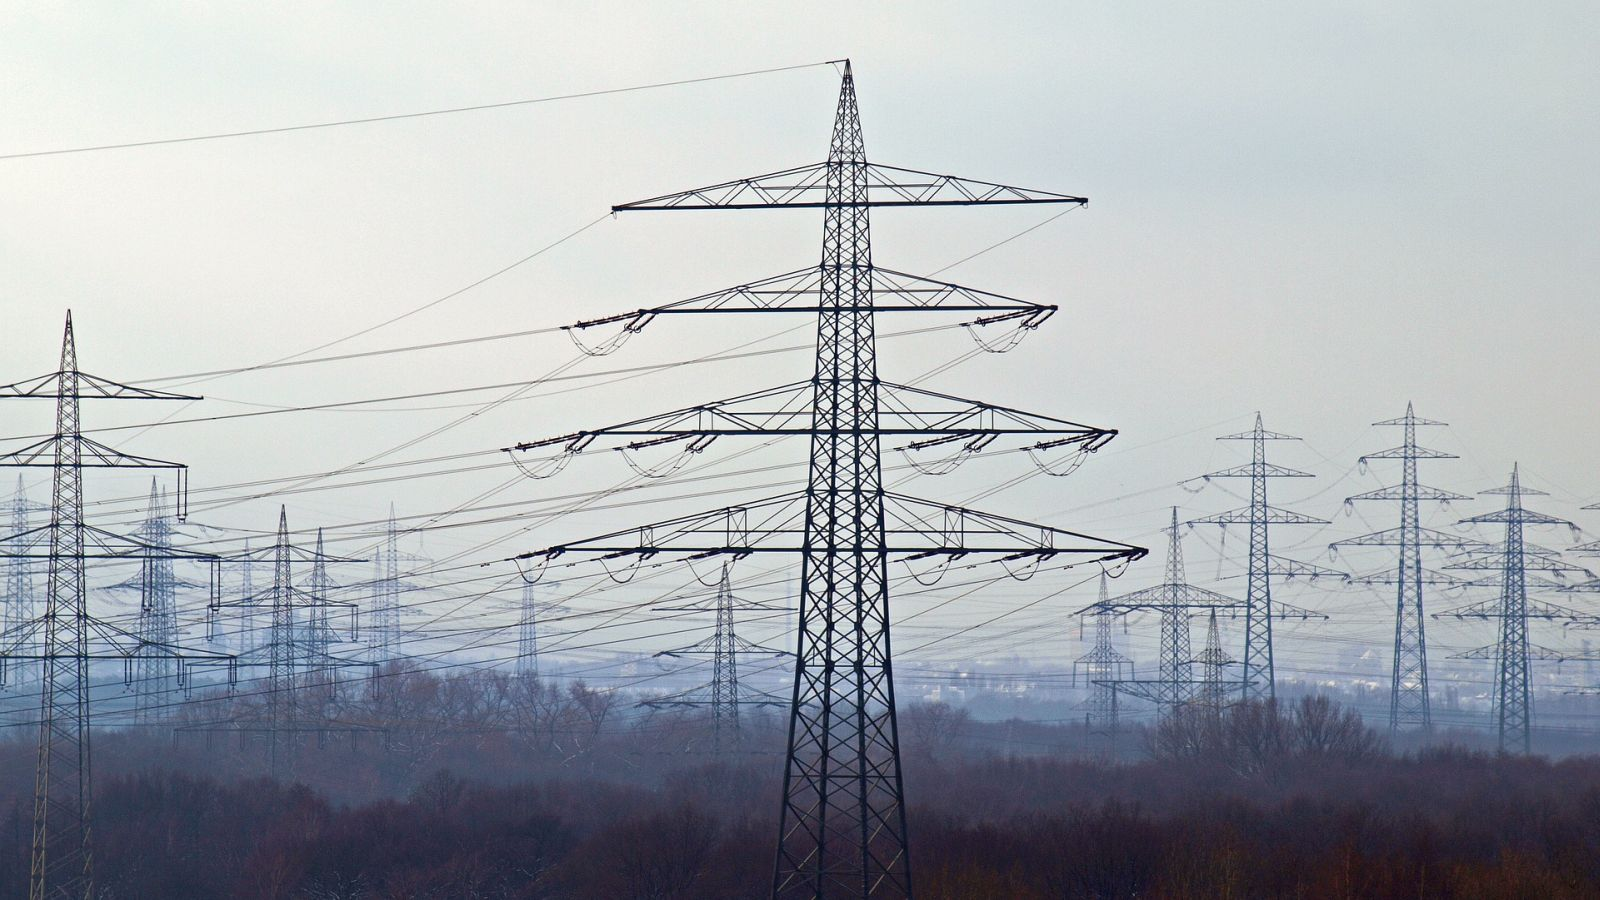 Zimbabwe pays Eskom R139m for electricity, proof posted to